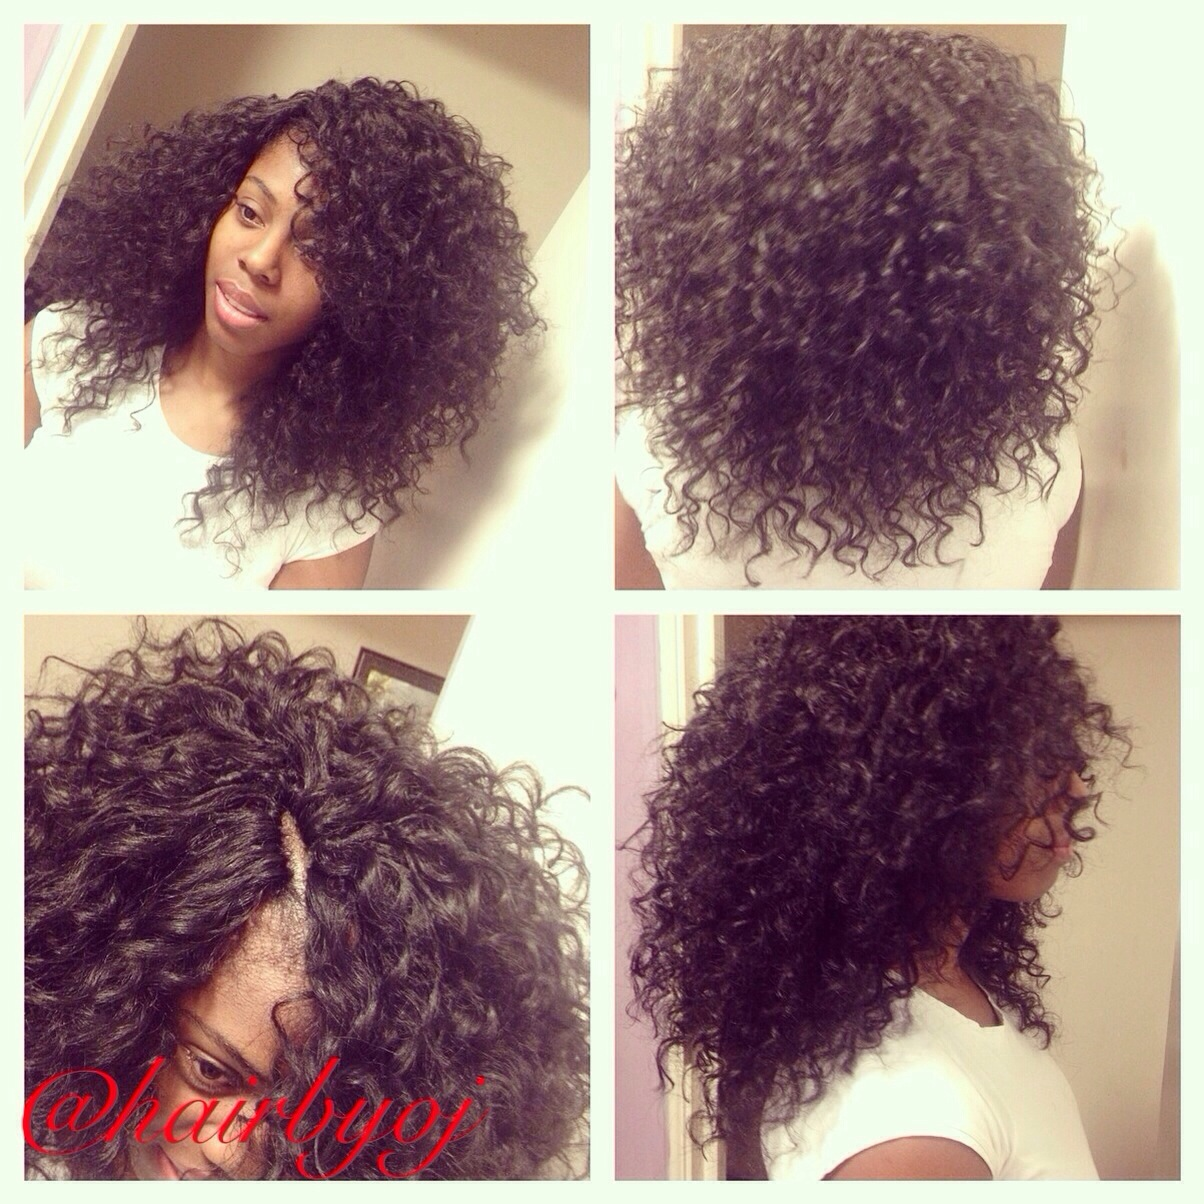 Crochet Hair Styles With Curly Hair : Chest length curly crochet braids with versatile side and middle ...